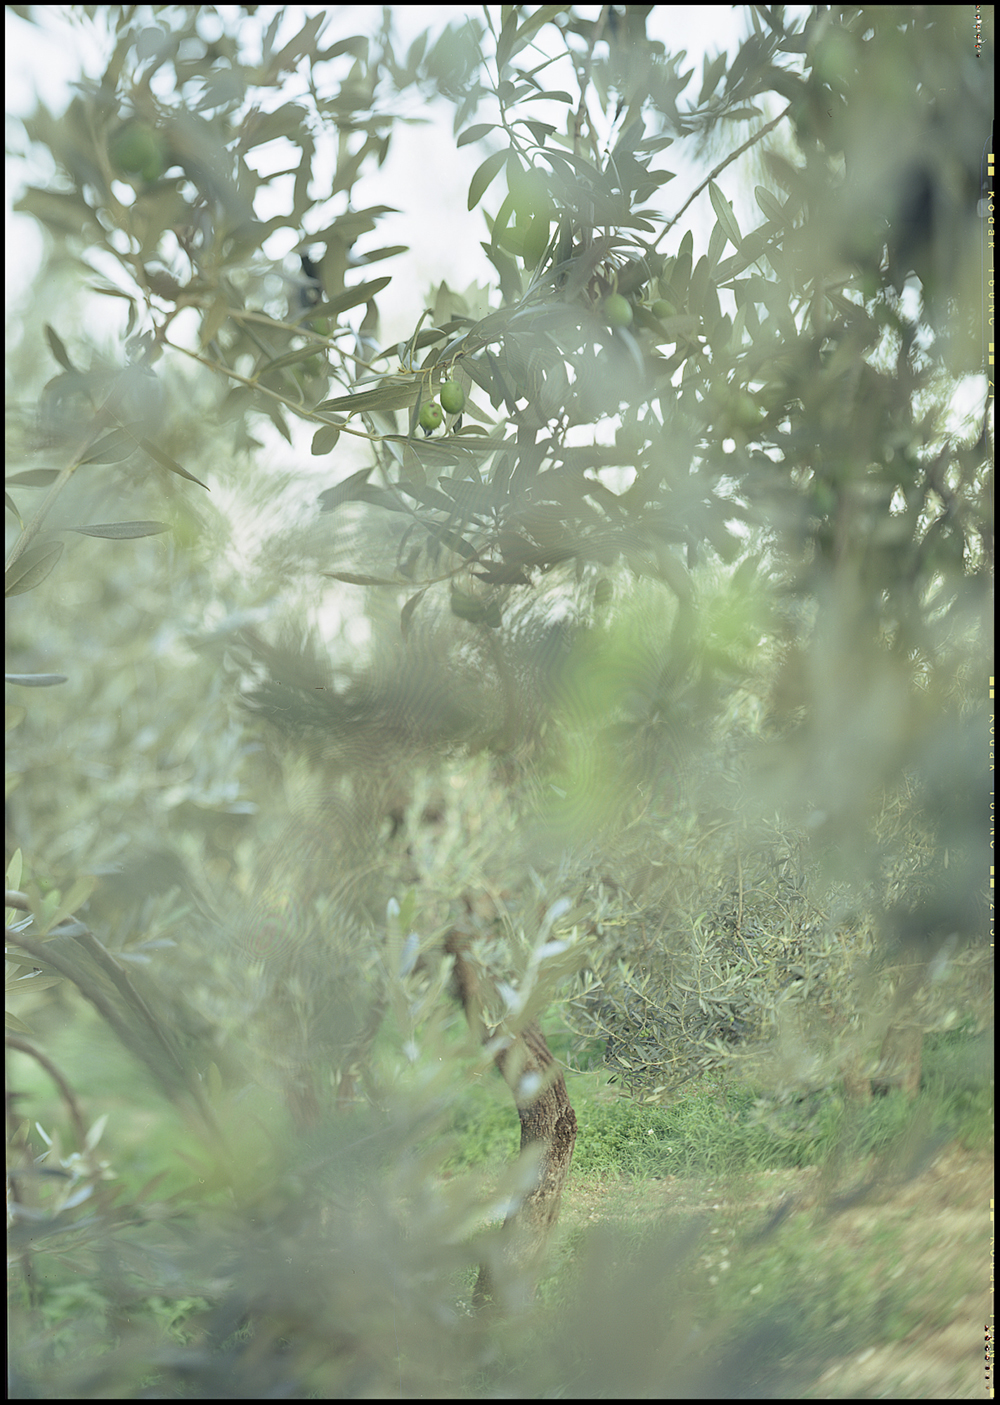 JoAnn Verburg, Camouflage, 2003, chromogenic print, 24 x 17 inches, edition of 9, price on request